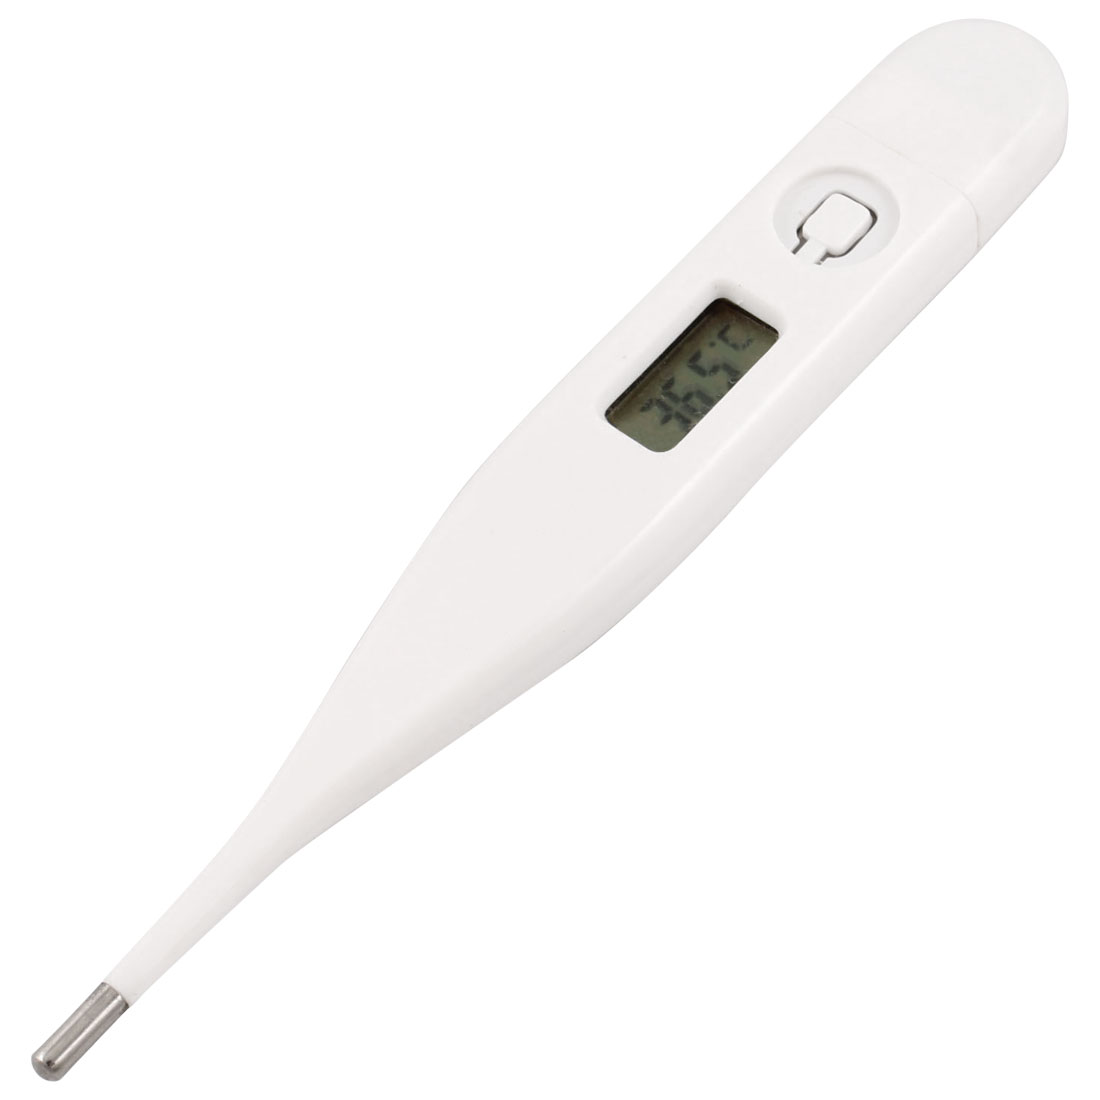 White Plastic LCD Display Compact Digital Thermometer 32-42 Celsius Degree Health Care  White Plastic LCD Display Compact Digital Thermometer 32-42 Celsius Degree Health Care  White Plastic LCD Display Compact Digital Thermometer 32-42 Celsius Degree Health Care  White Plastic LCD Display Compact Digital Thermometer 32-42 Celsius Degree Health Care  White Plastic LCD Display Compact Digital Thermometer 32-42 Celsius Degree Health Care  White Plastic LCD Display Compact Digital Thermometer 32-42 Celsius Degree Health Care